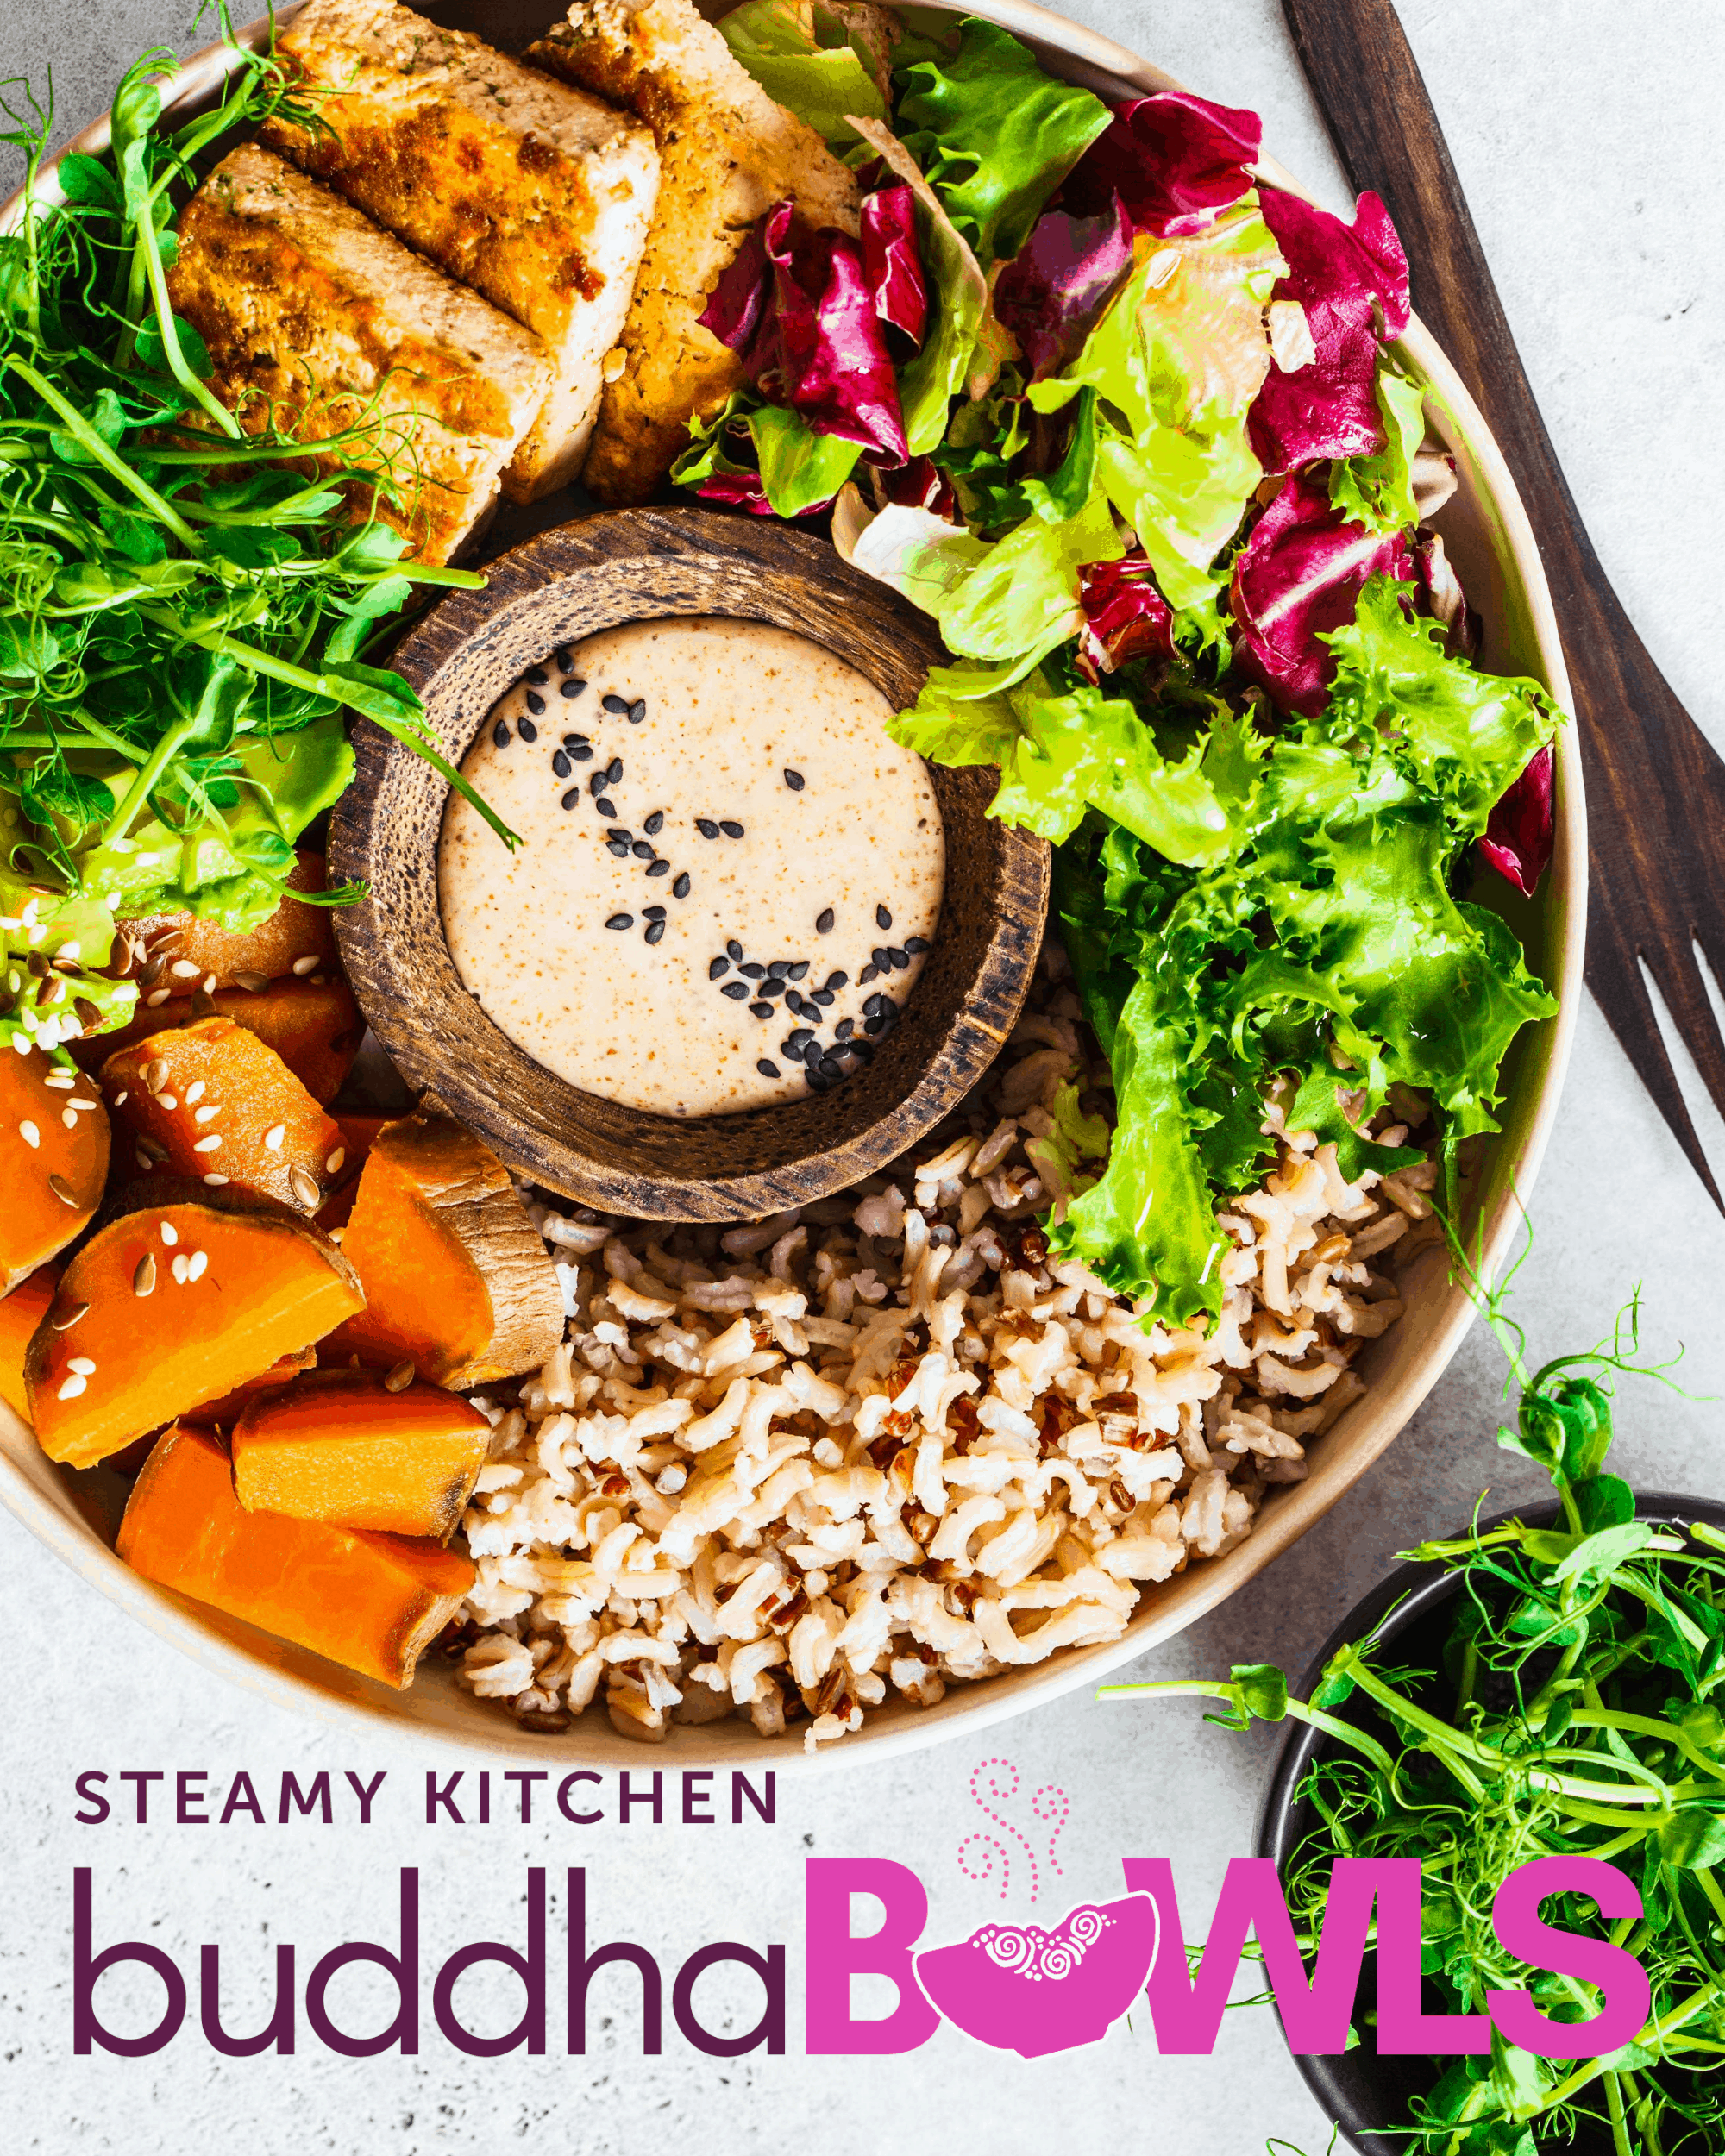 Rainbow Buddha Bowl Recipe with Tahini-Lemon Dressing